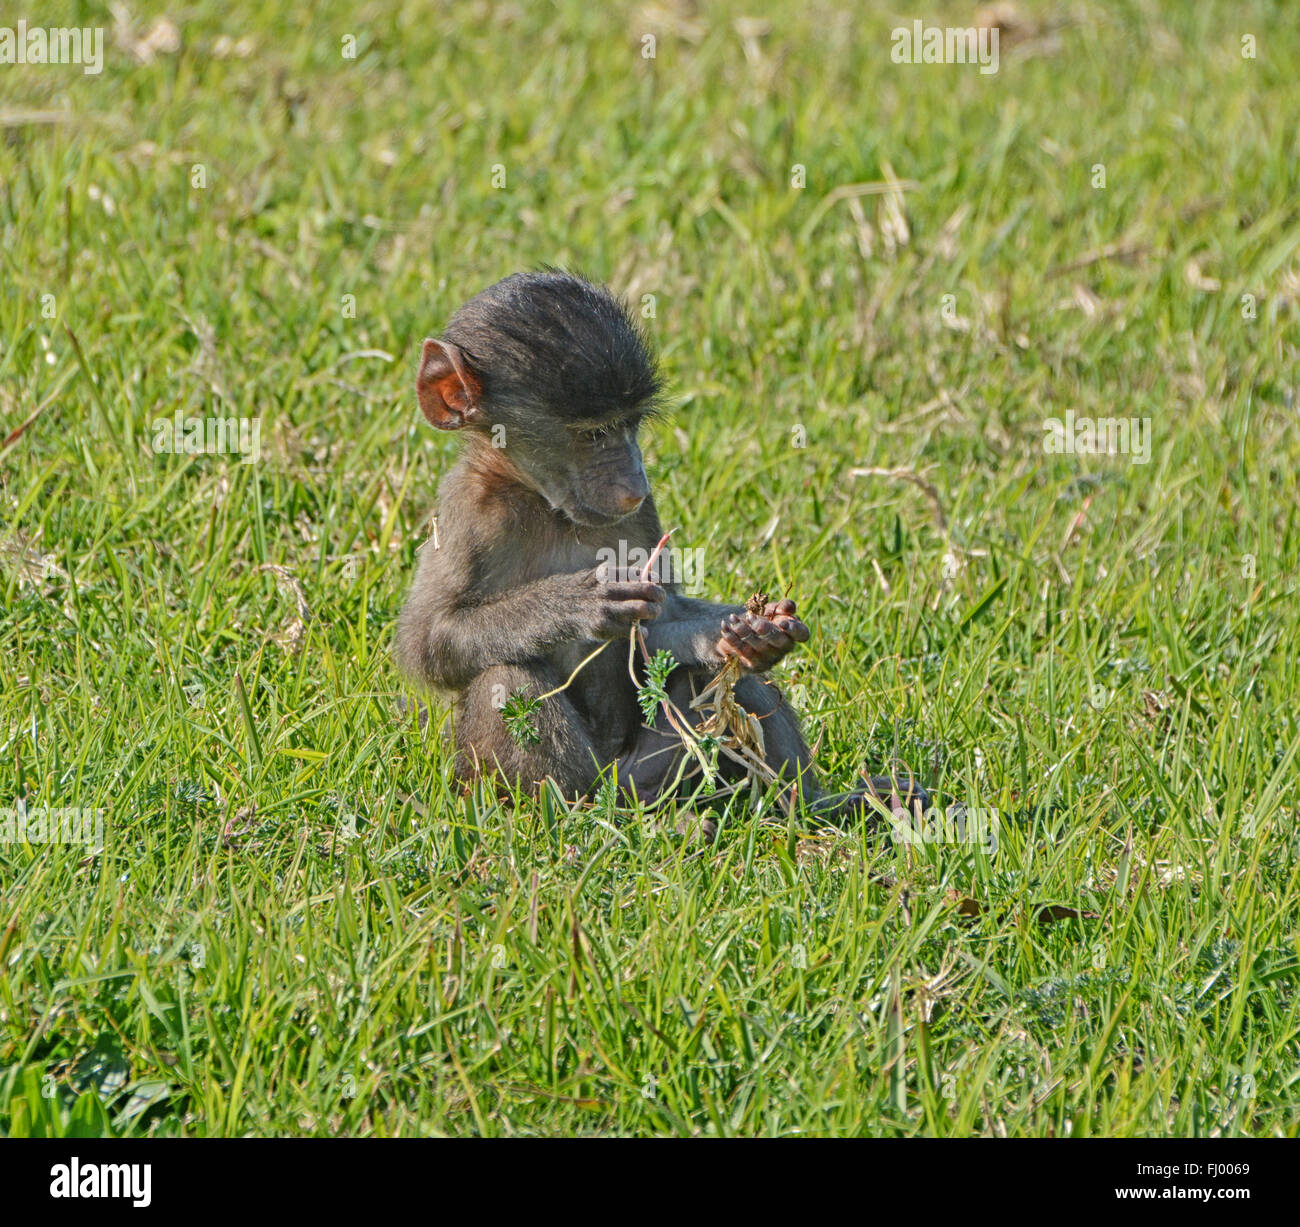 A baby Chacma Baboon surveys his grass roots, South Africa - Stock Image